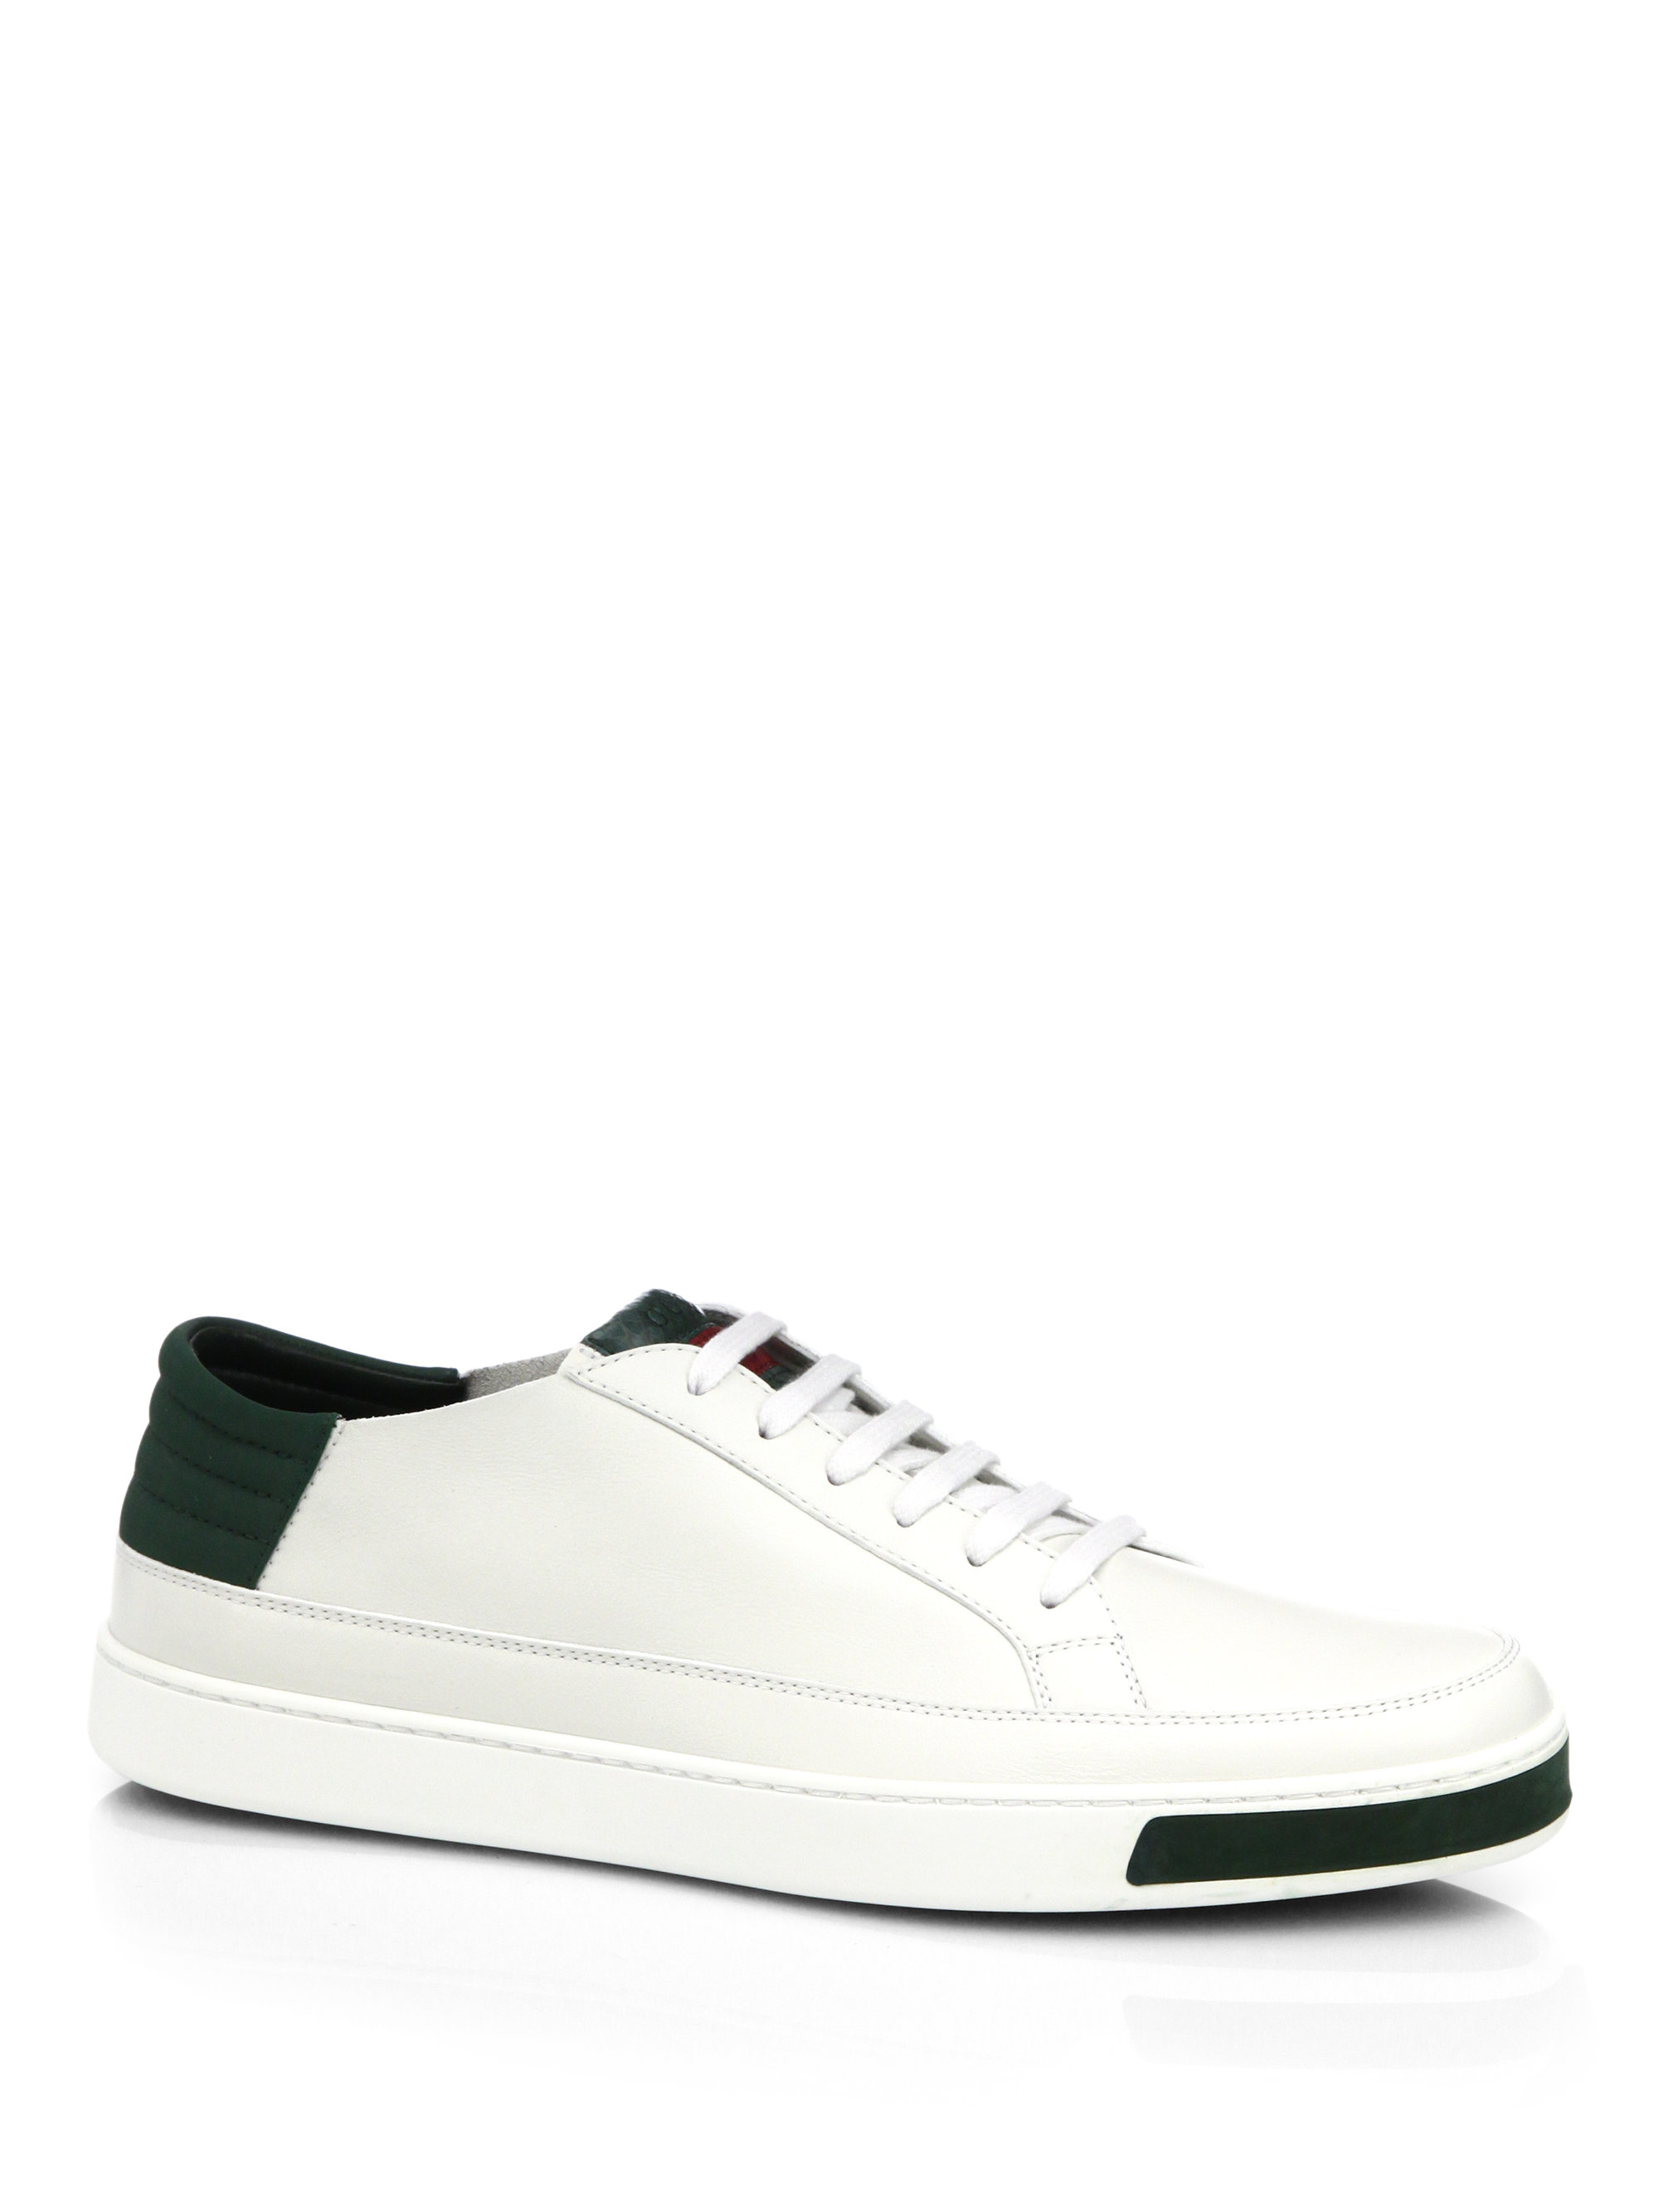 5eae4e746 Gucci Leather, Suede & Lizard Low-top Sneakers in White for Men - Lyst